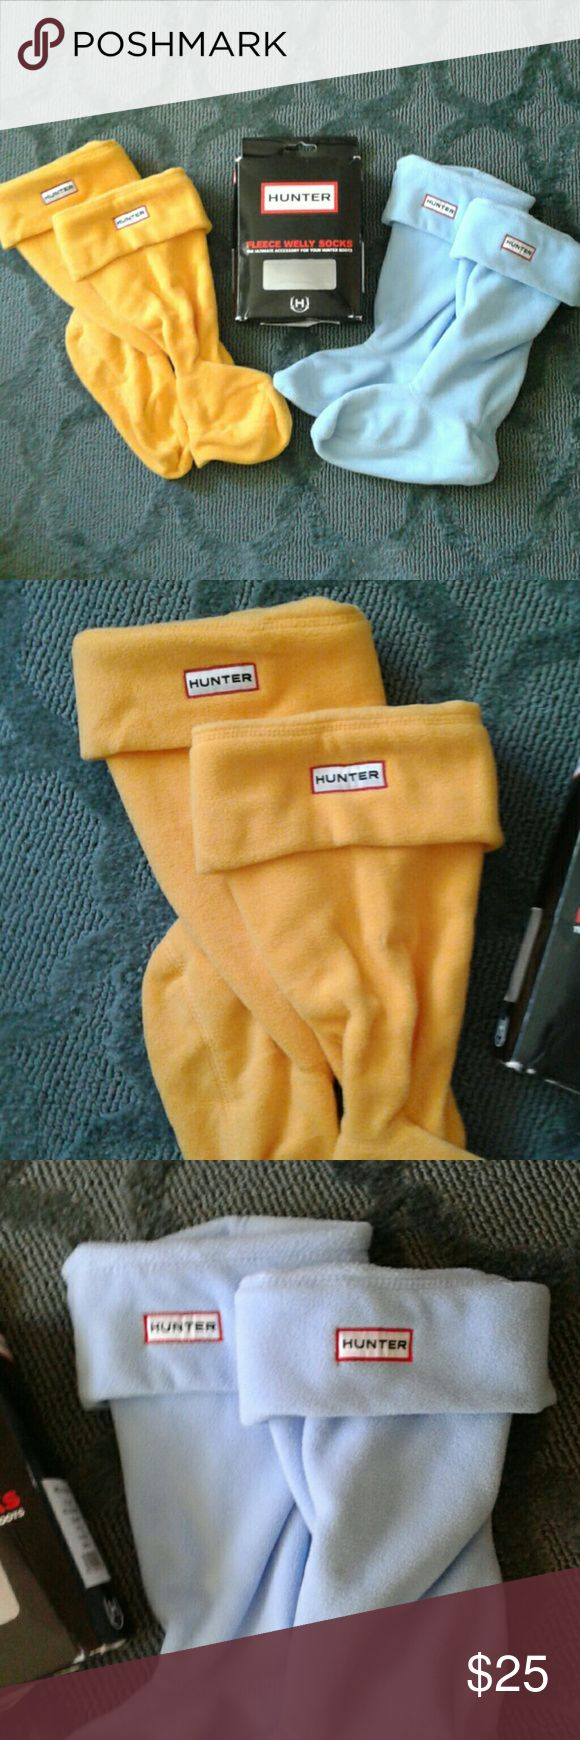 💕SALE💕 Hunter Fleece Welly Socks - Two Pair! I have two pair of Hunter fleece boot socks. These have never been worn.  They are a size Medium for tall boots. One pair is baby blue, while the other pair is a bright yellow. Hunter Boots Accessories Hosiery & Socks